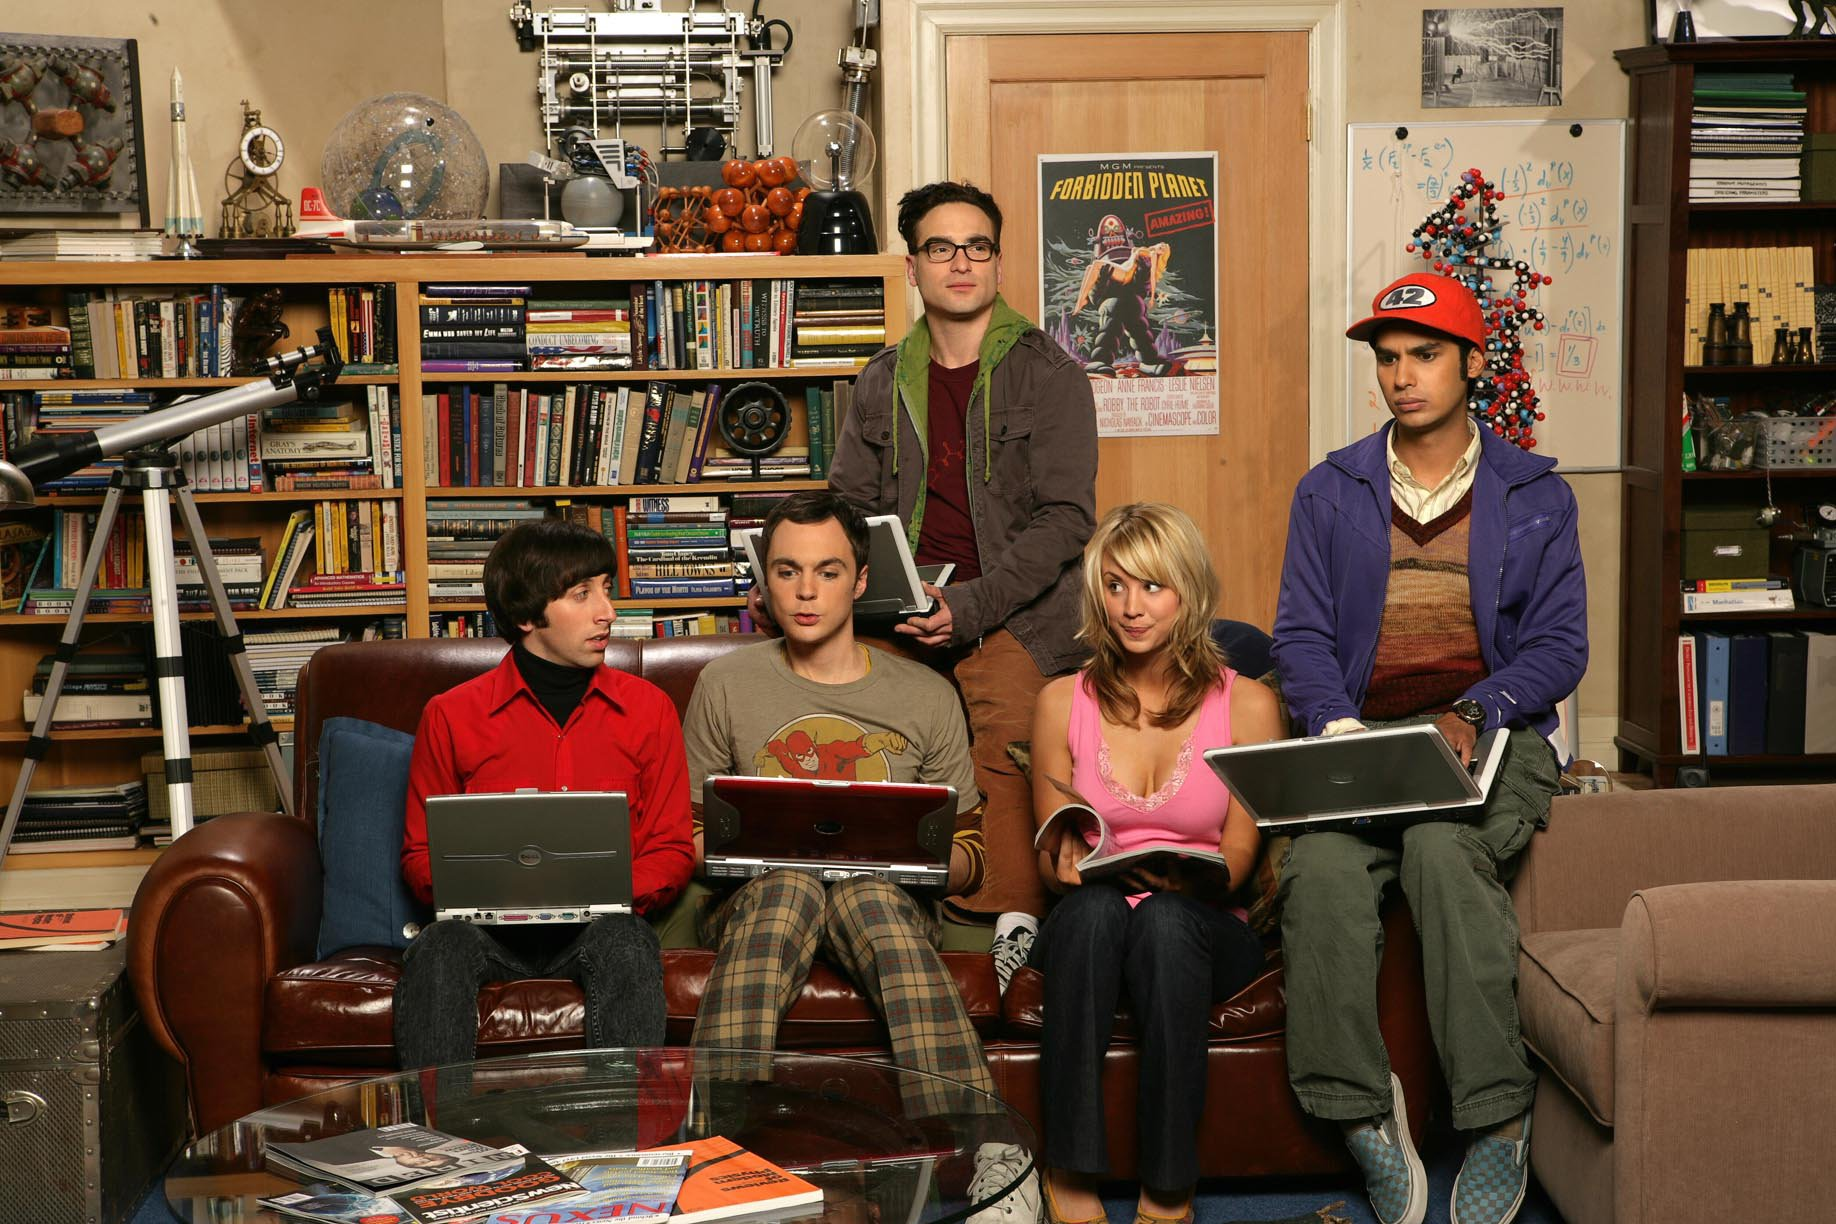 Television programme: The Big Bang Theory 10pm E4 THE BIG BANG THEORY, (YR 1) THE BIG BANG THEORY, (YR 1 Medium shot in living room of Simon Helberg as Howard, Jim Parsons as Sheldon, Johnny Galecki as Leonard, Kaley Cuoco as Penny, and Kunal Nayyar as Rajesh. Tx:25/05/2008 06:30 This picture may be used solely for Channel 4 programme publicity purposes in connection with the current broadcast of the programme(s) featured in the national and local press and listings. Not to be reproduced or redistributed for any use or in any medium not set out above (including the internet or other electronic form) without the prior written consent of Channel 4 Picture Publicity 020 7306 8685 CHANNEL 4 PICTURE PUBLICITY 124 Horseferry Road London SW1P 2TX 020 7306 8685